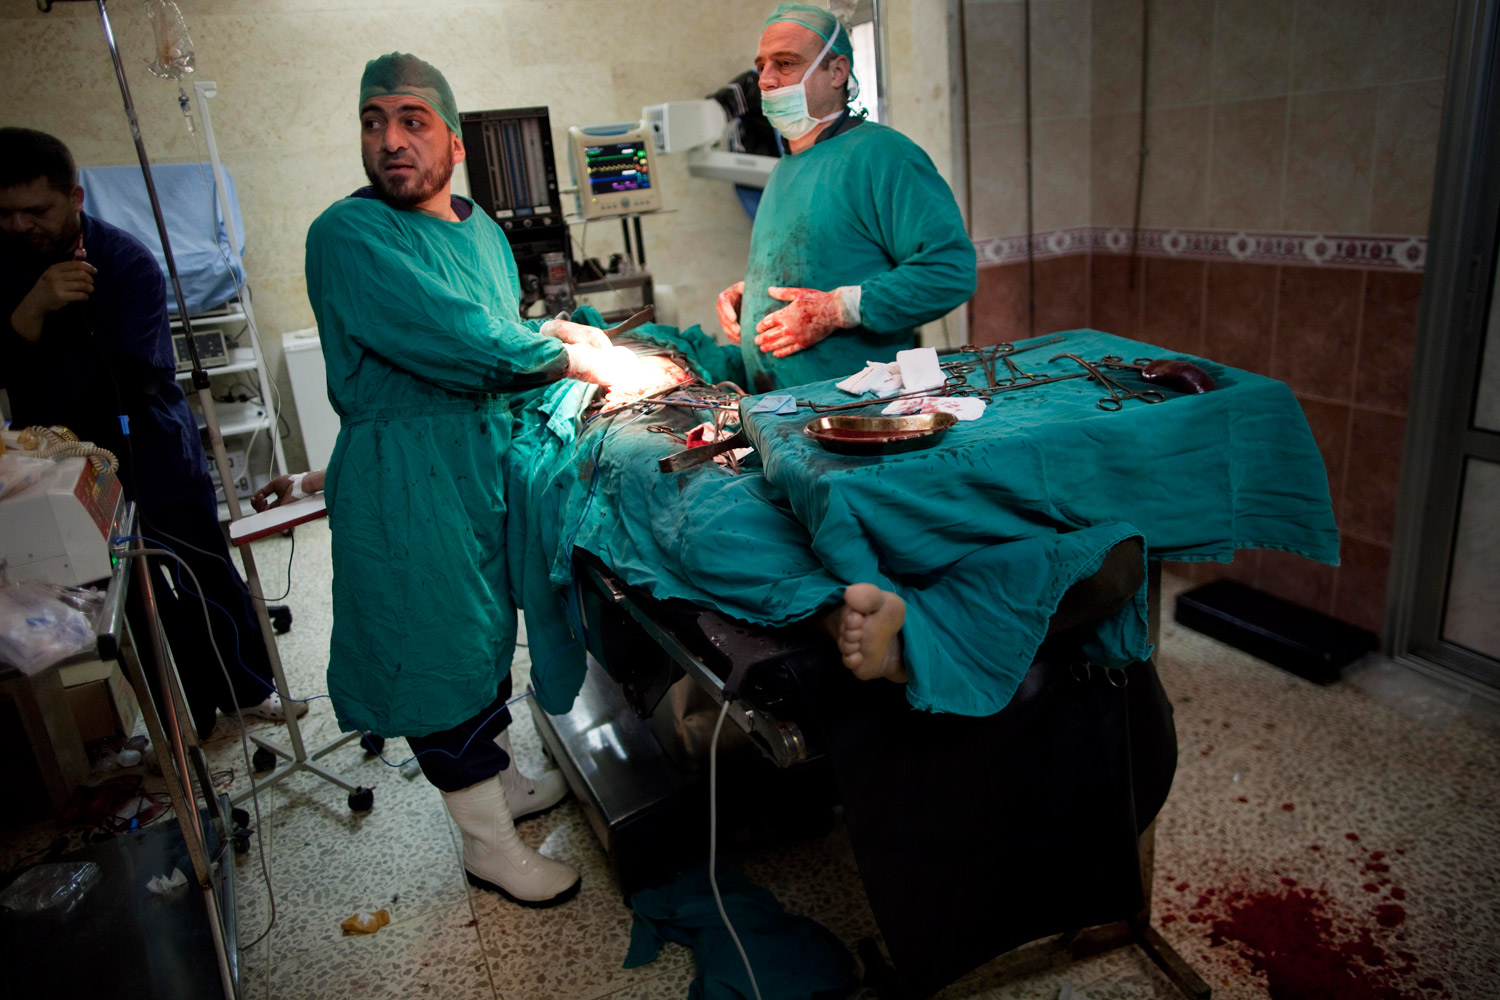 March 10, 2012. Doctors try to save the life of a severely wounded Free Syrian Army fighter during fighting against government troops in Idlib, Syria.